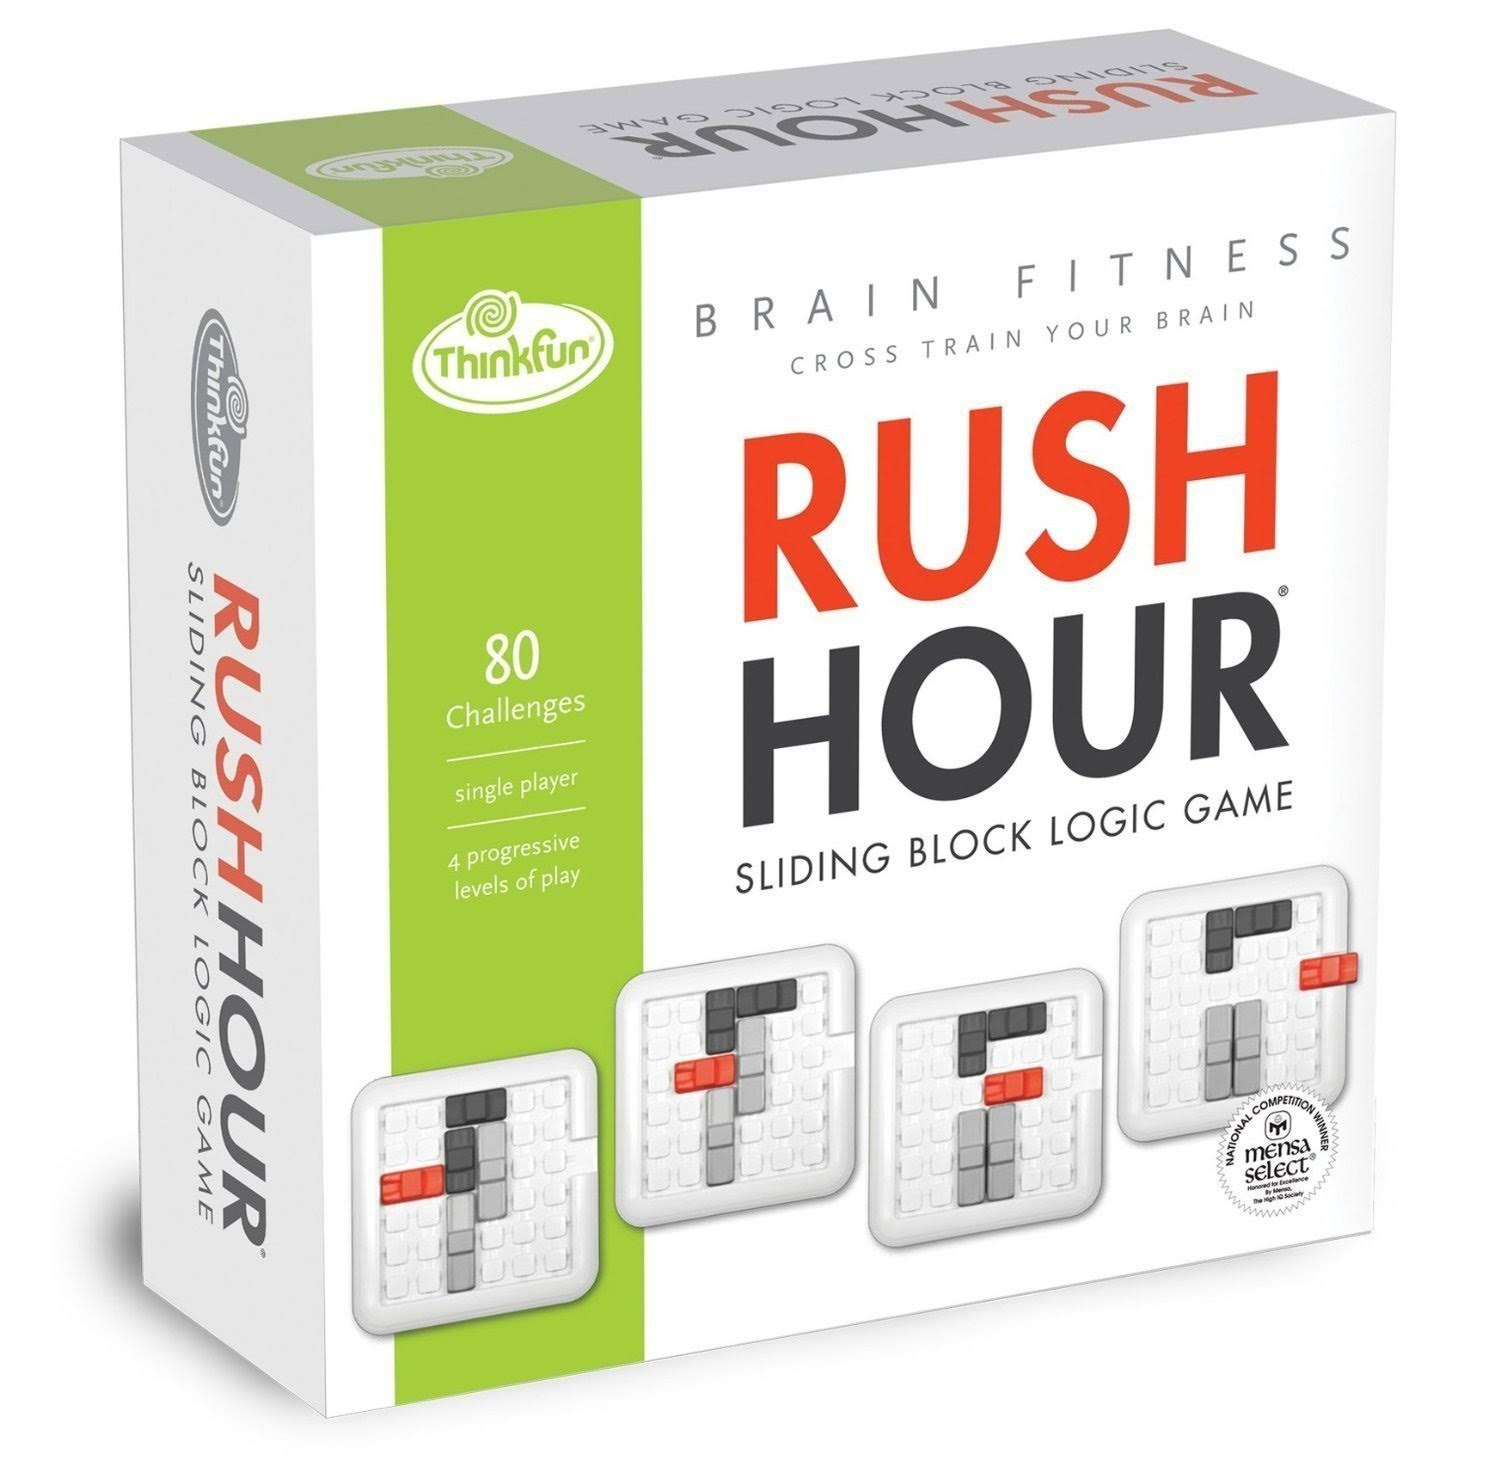 Think Fun Brain Fitness Rush Hour Board Game